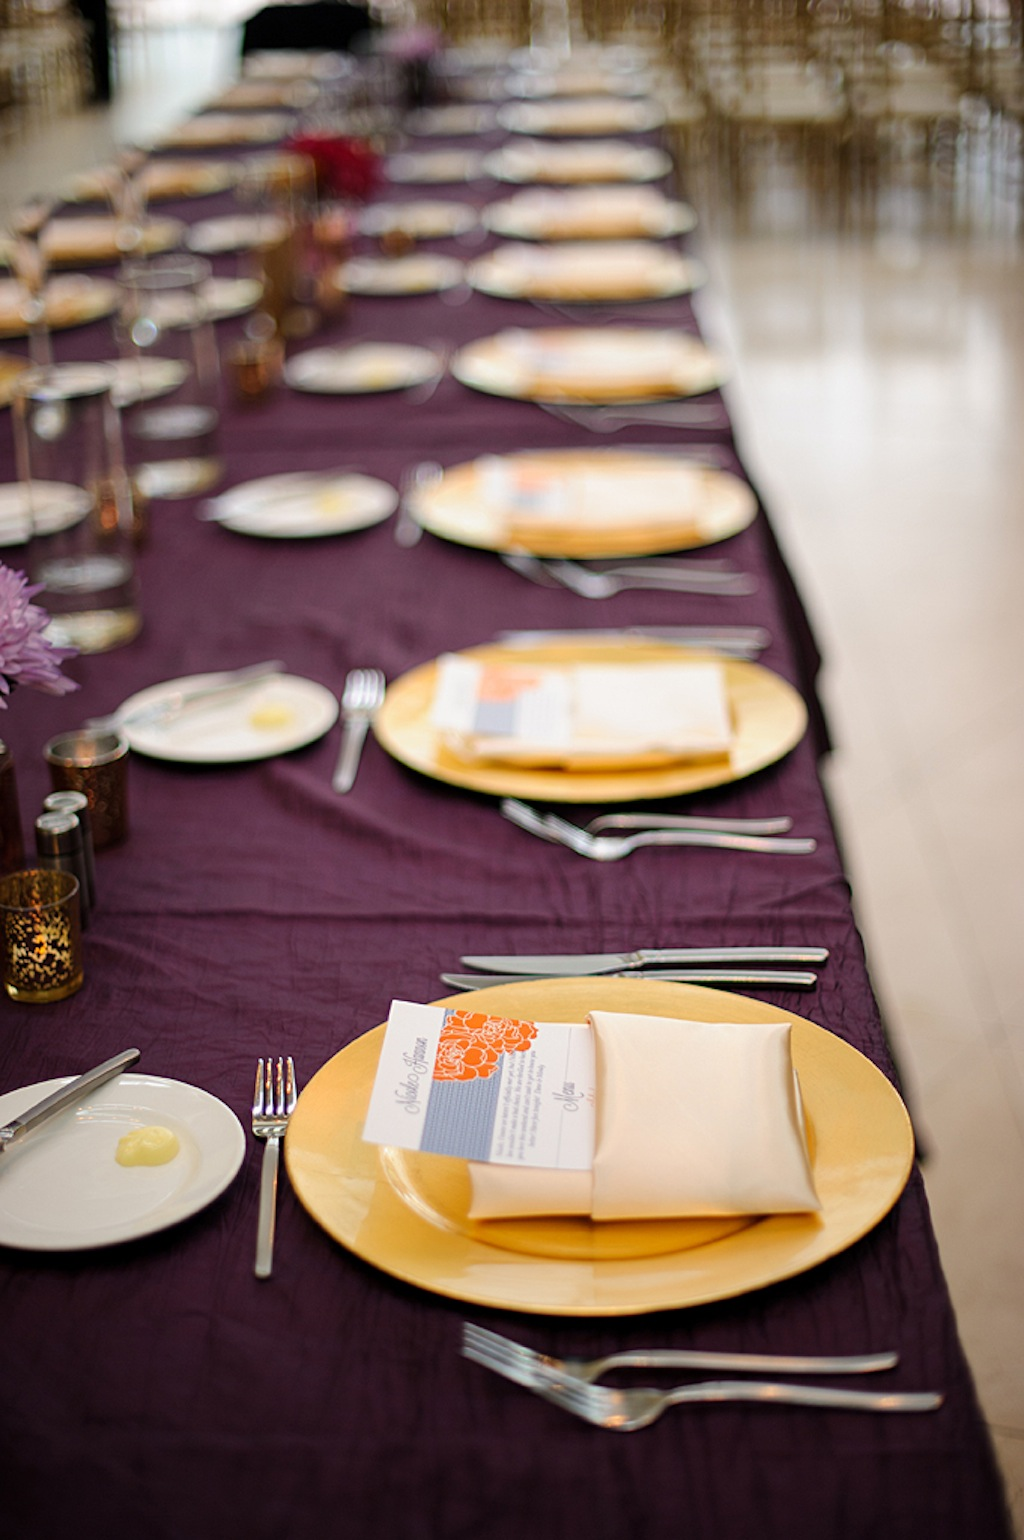 St. Pete Museum of Art Wedding Reception with Purple Linens and Gold Chargers